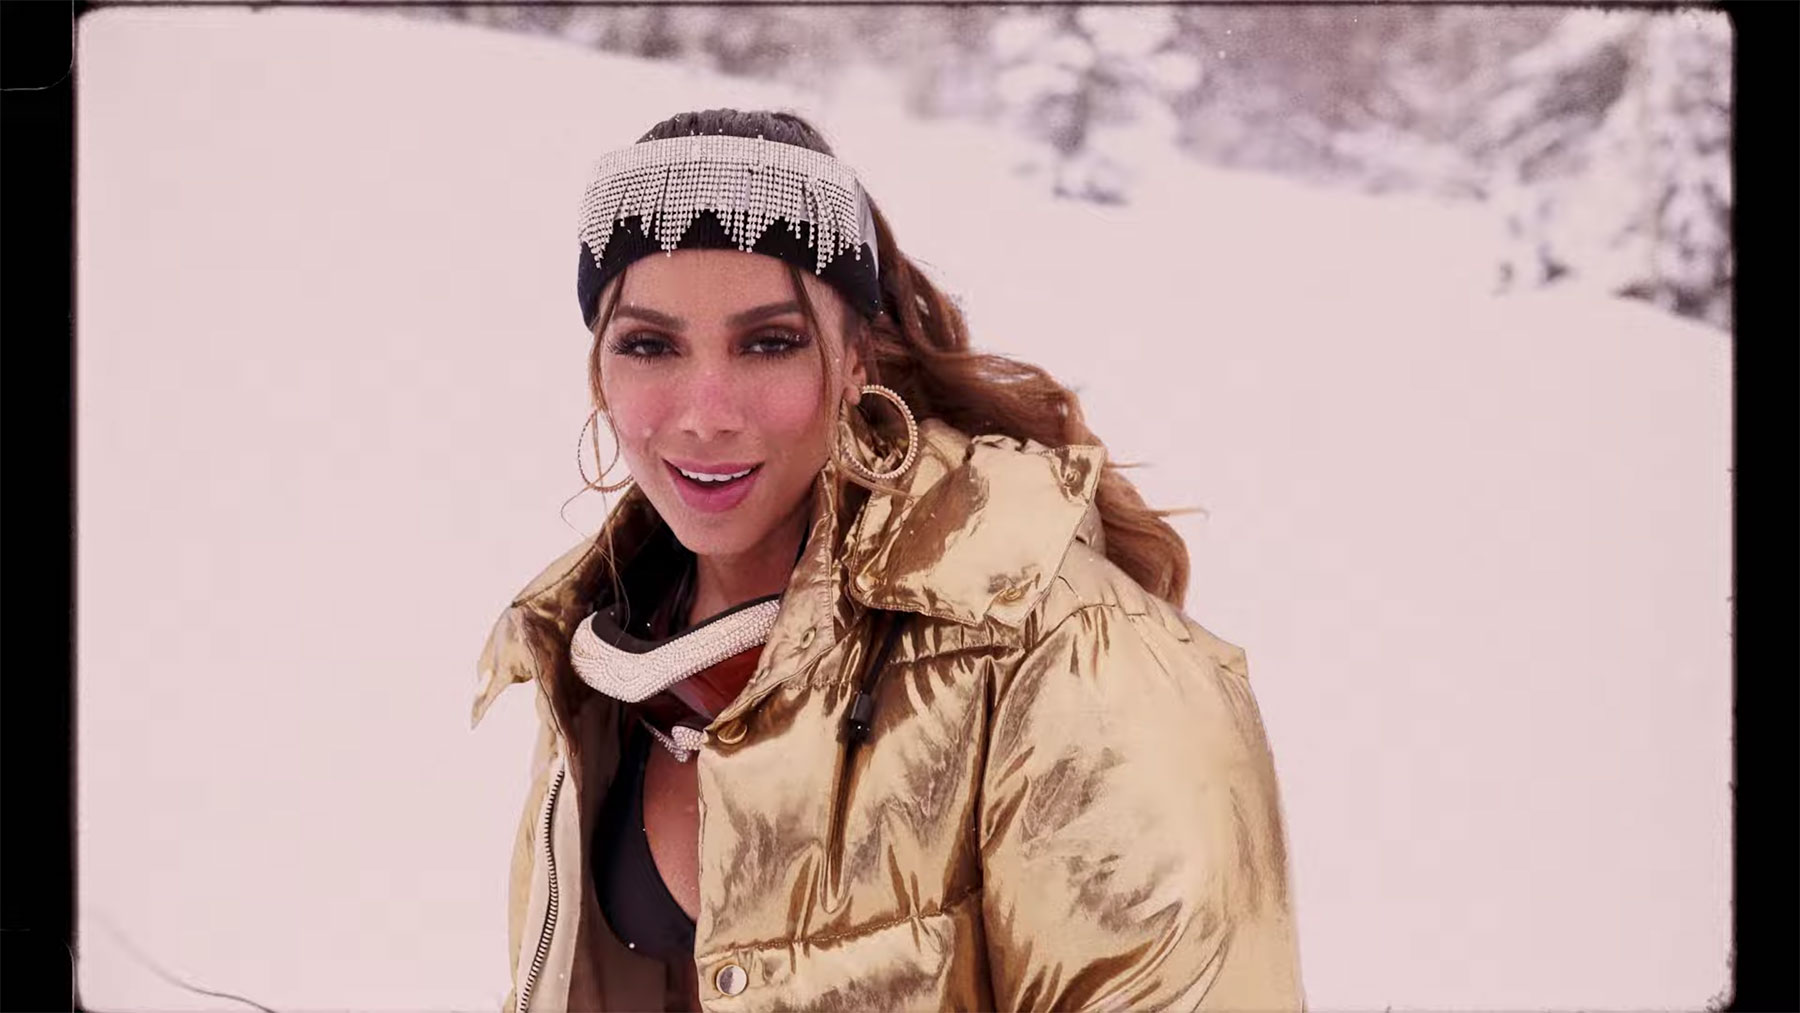 Anitta loco video Anitta Slopes Through the Mountains in a Bikini in Loco Video 8211 Rolling Stone